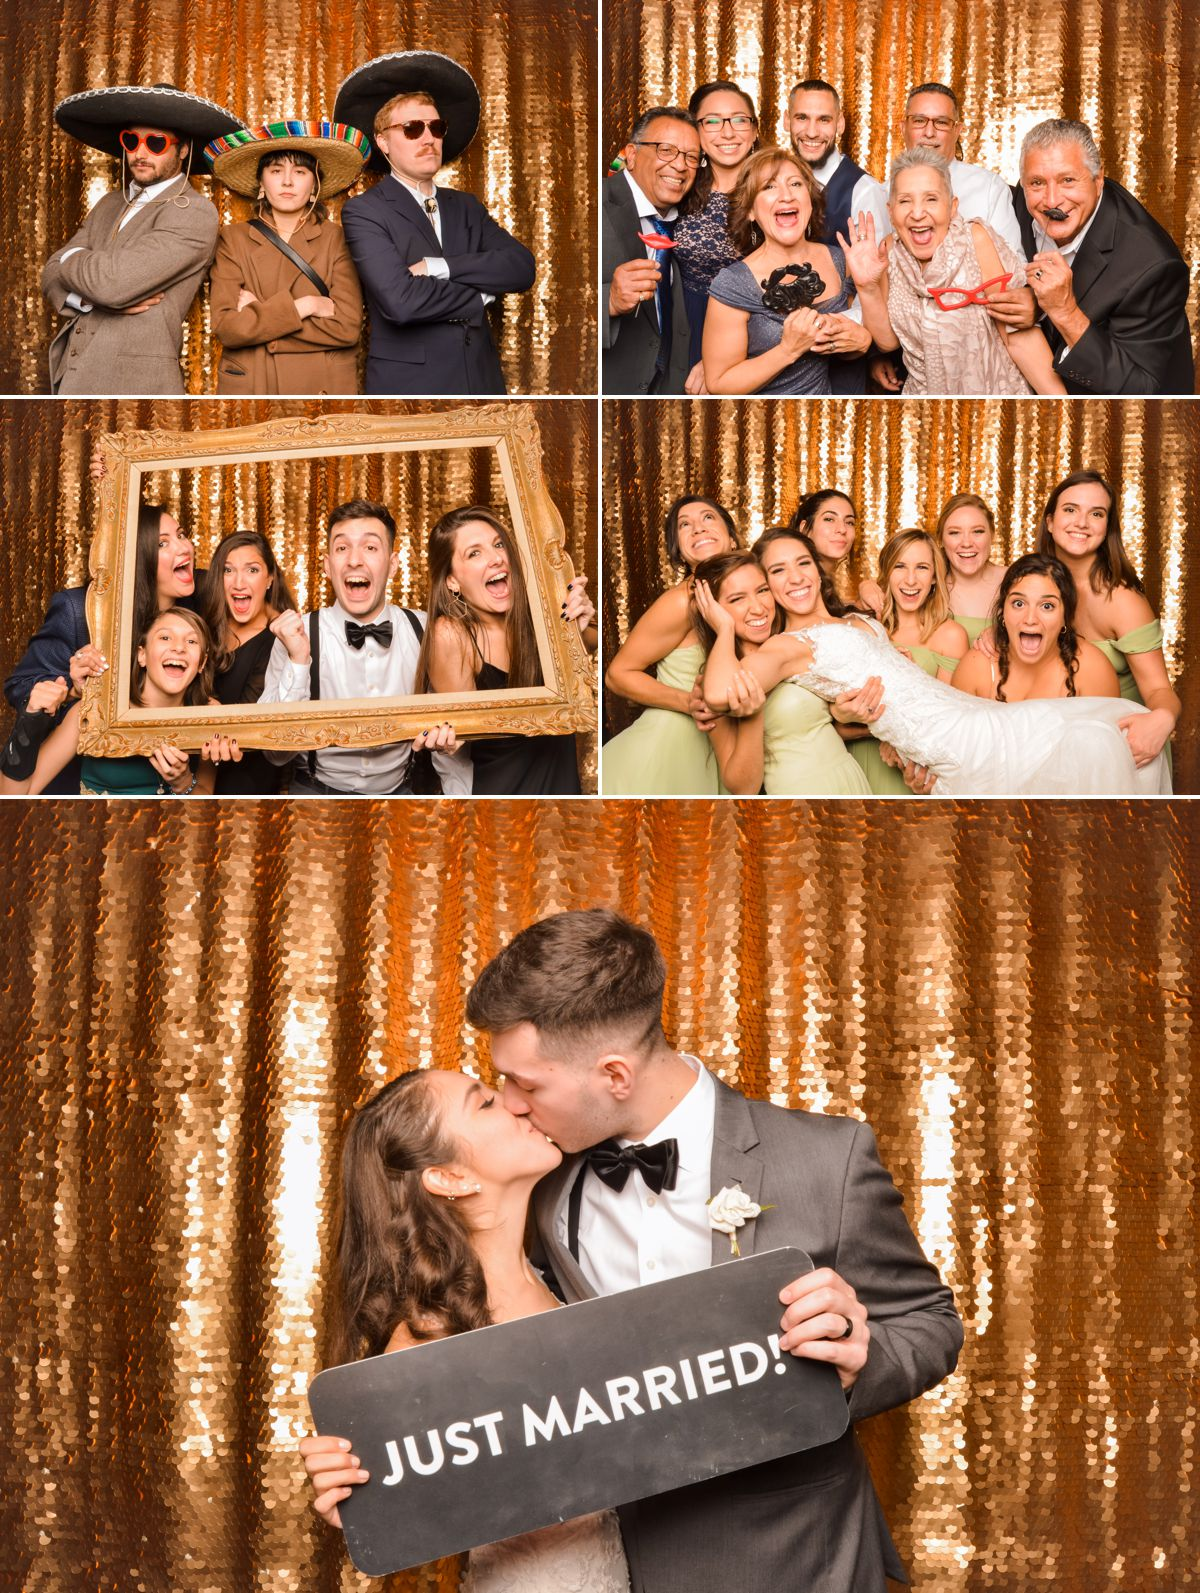 Station 3 Wedding Reception - Photo Booth - Houston Wedding Photographers